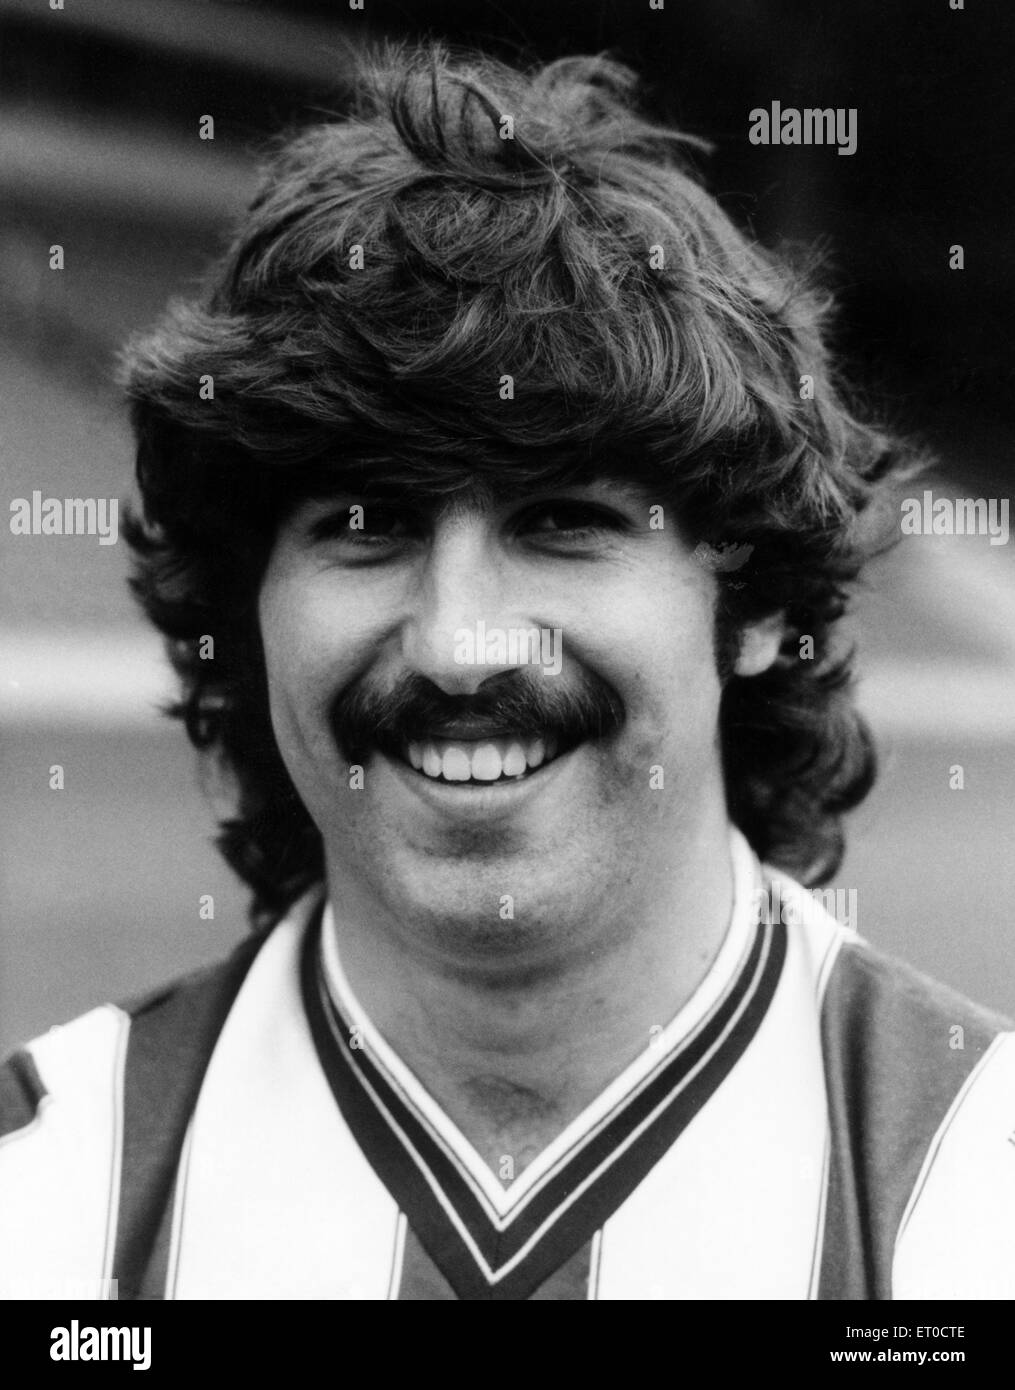 Steve MacKenzie, West Bromwich Albion Football Player, 6th August 1984. - Stock Image